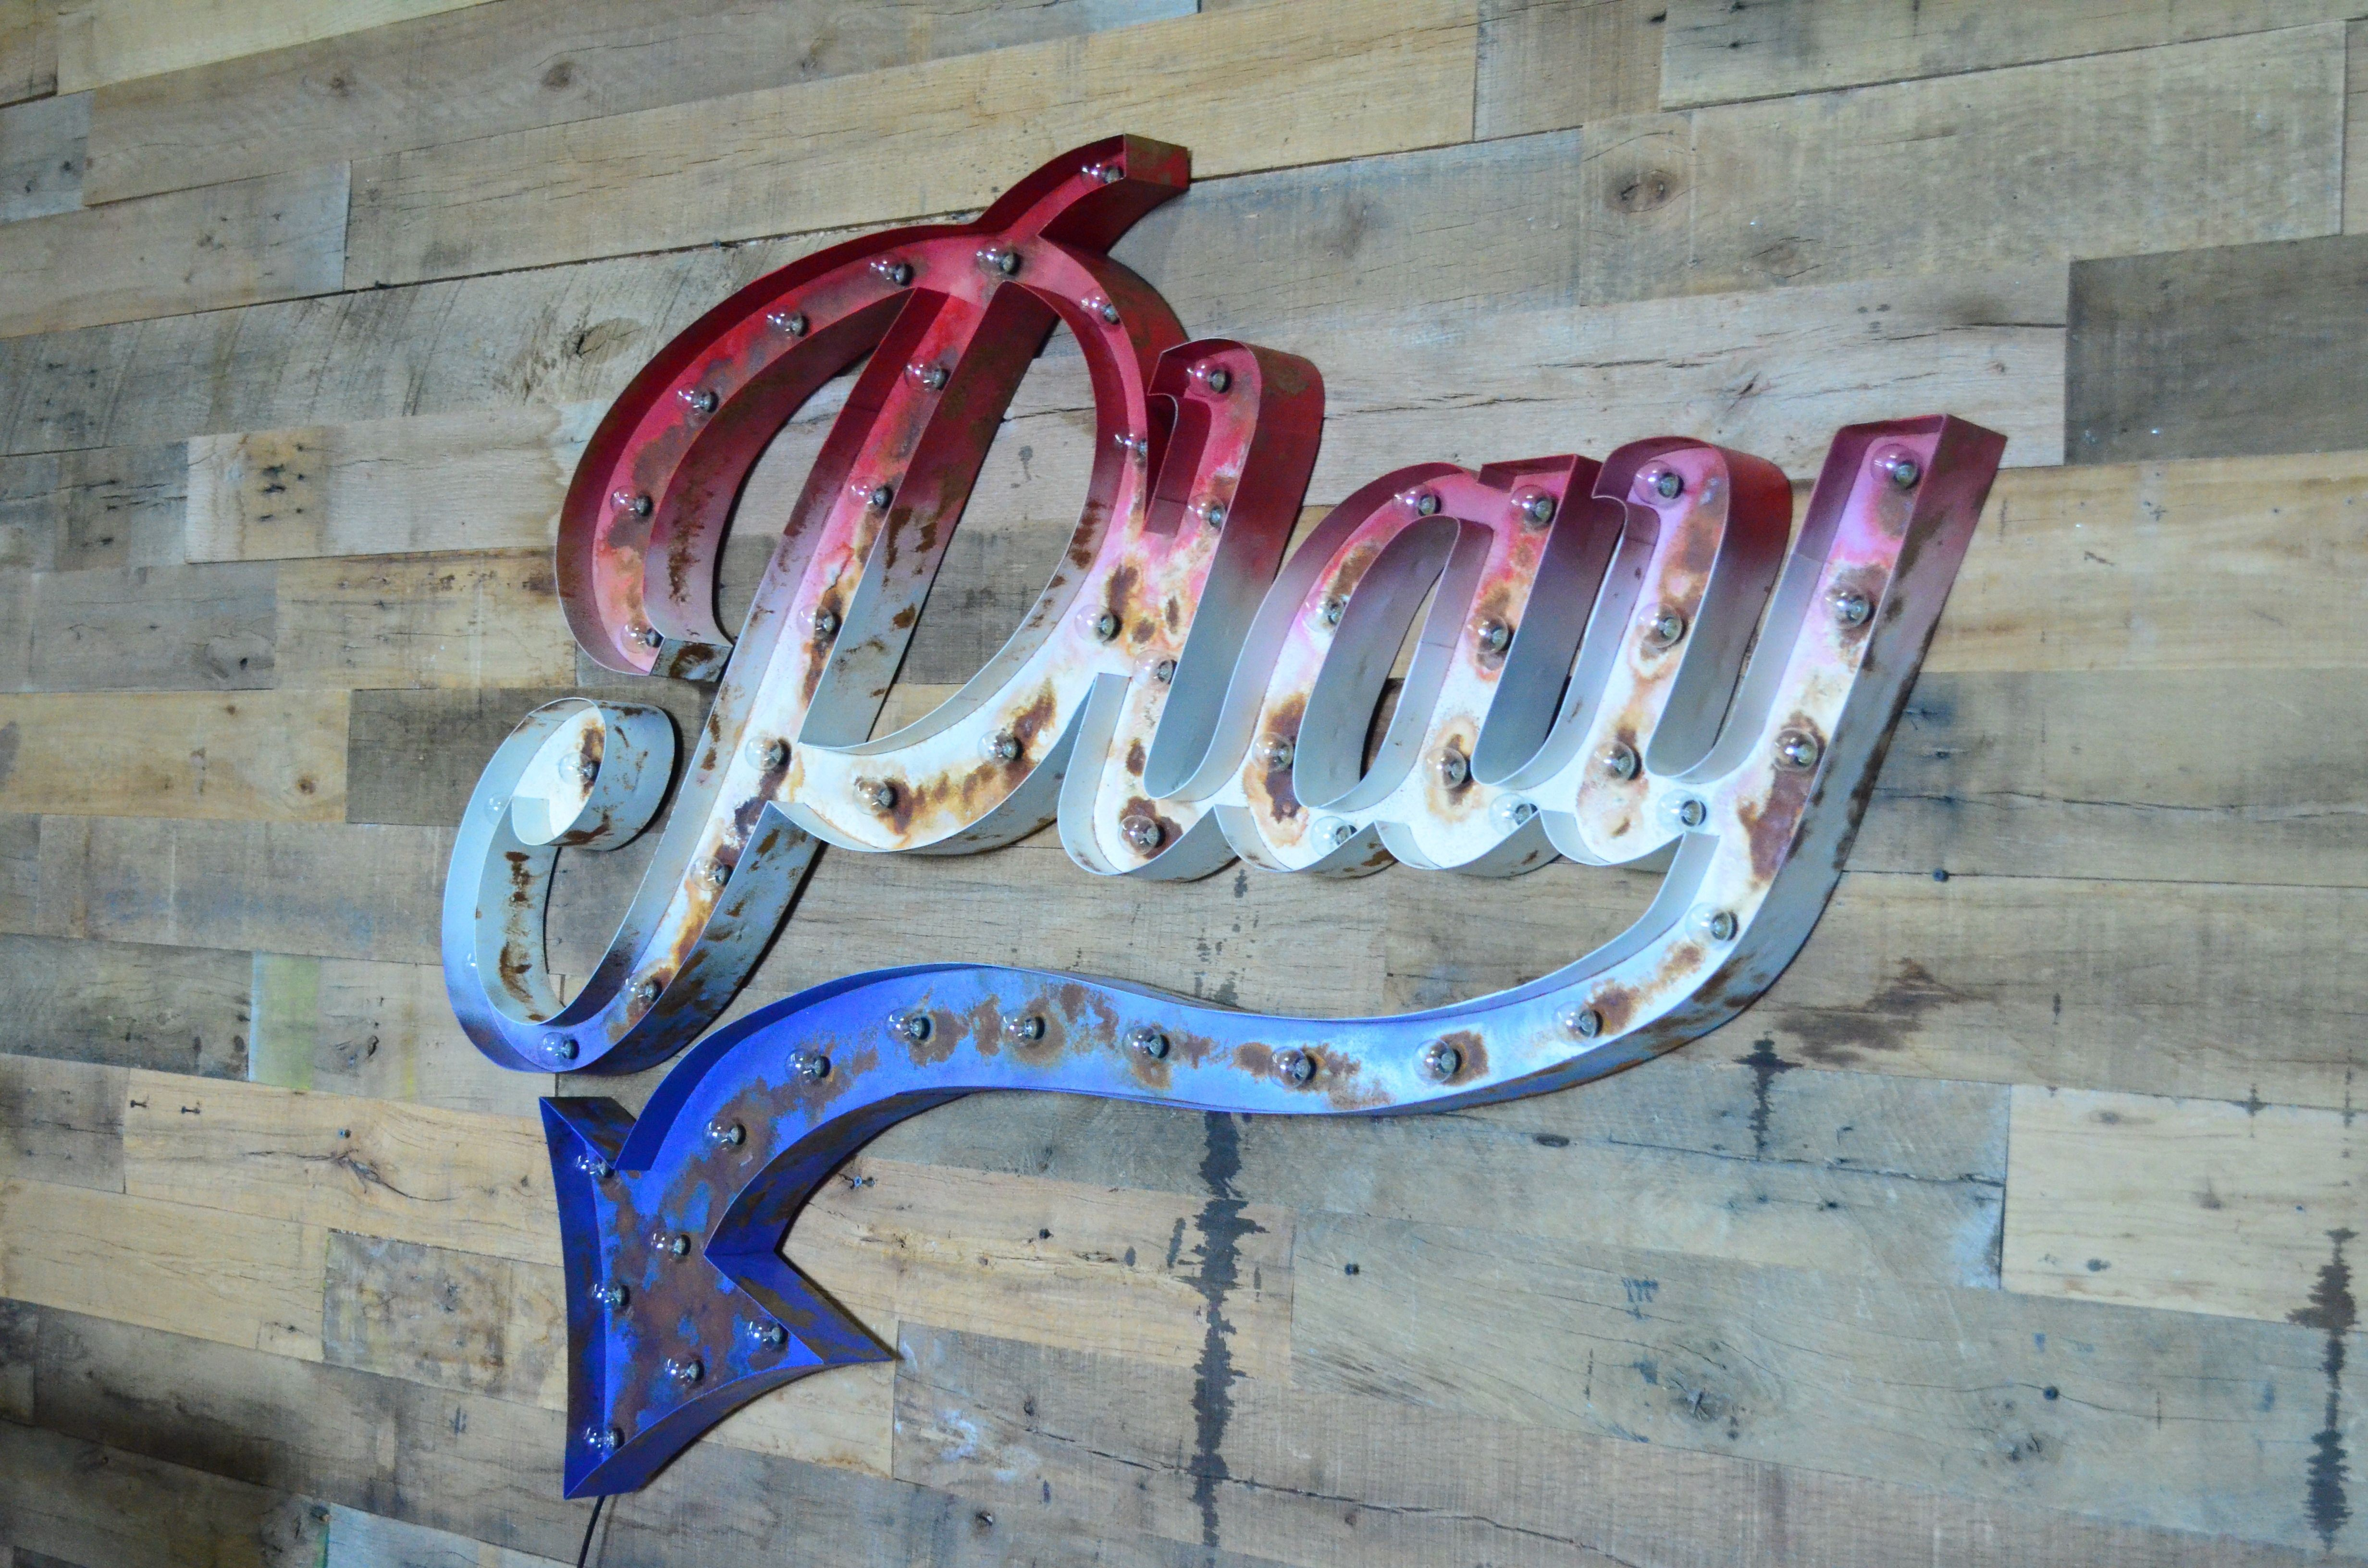 Custom Marquee Signs from the ORIGINAL Vintage Marquee Lights Your turn key signage